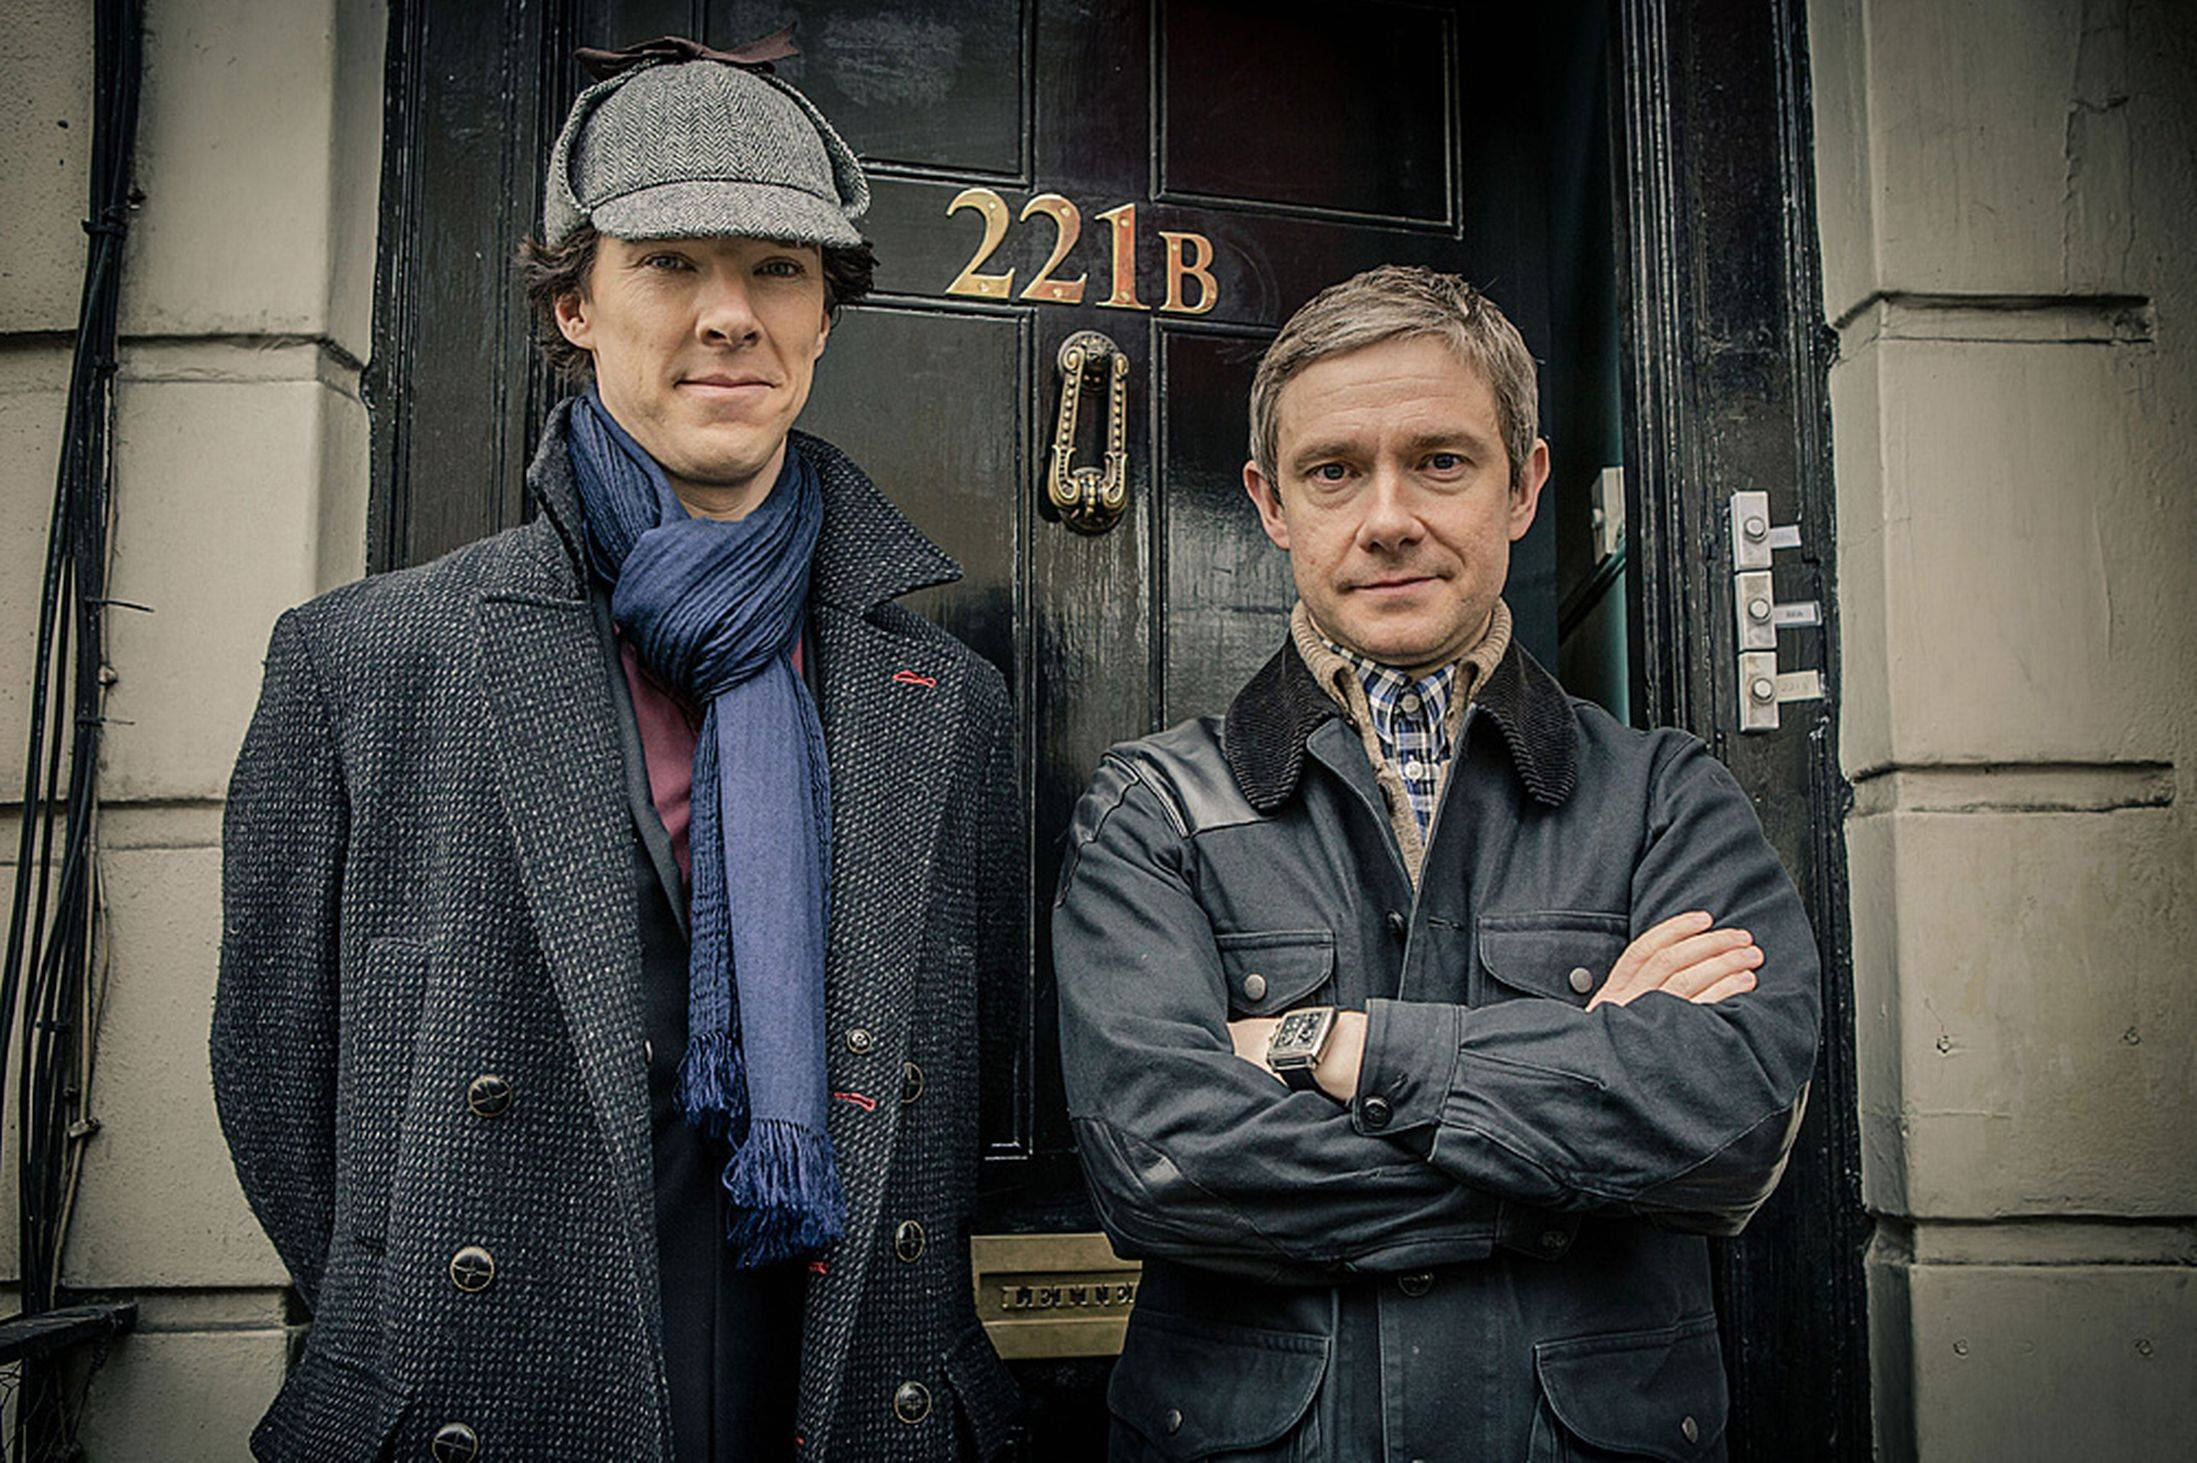 Sherlock | What to Read if You Want More British Drama